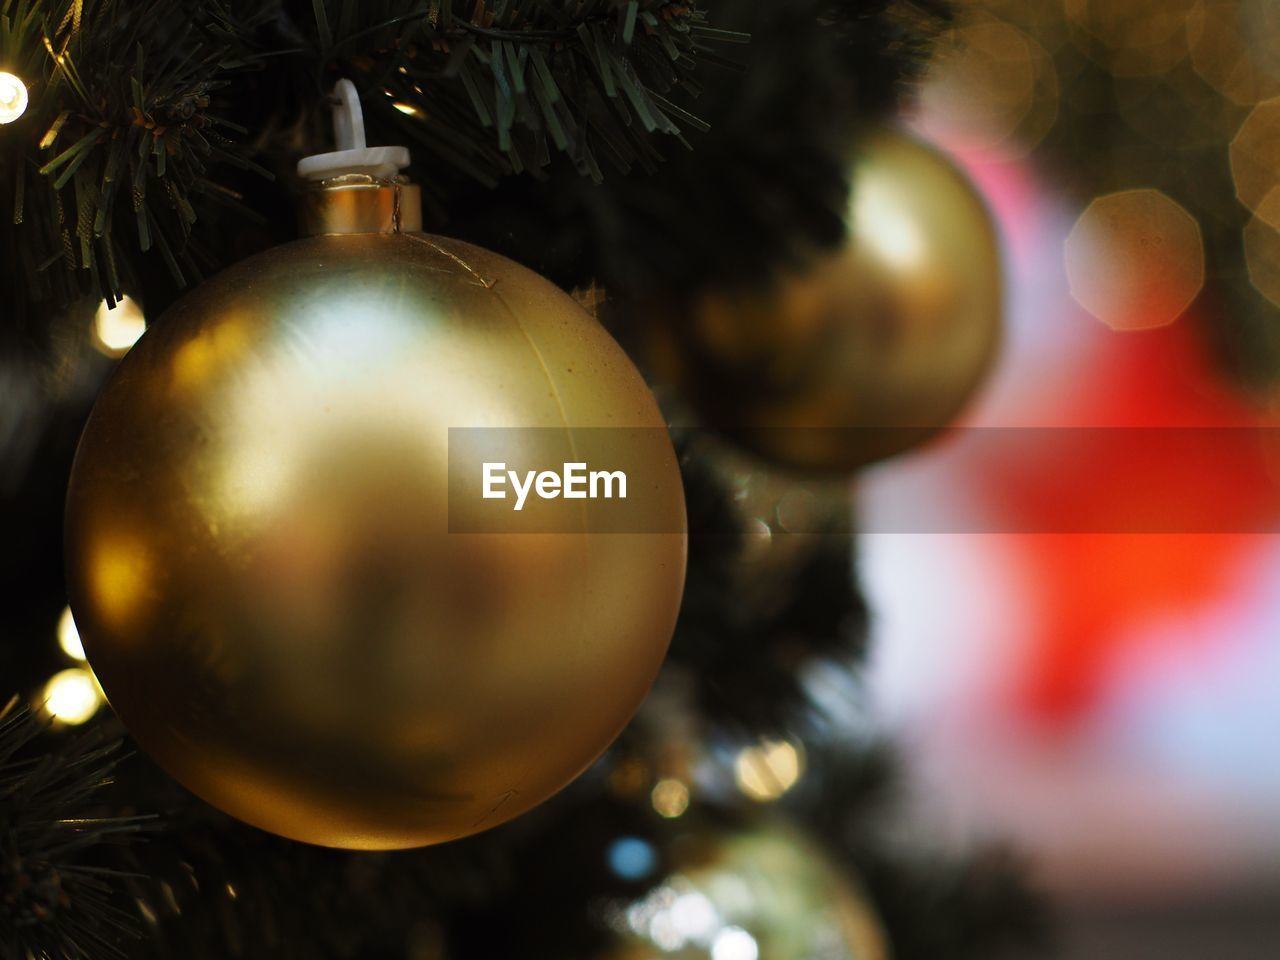 christmas, christmas decoration, christmas ornament, christmas tree, holiday, celebration, decoration, hanging, tree, holiday - event, close-up, indoors, celebration event, event, no people, sphere, focus on foreground, selective focus, silver colored, ornate